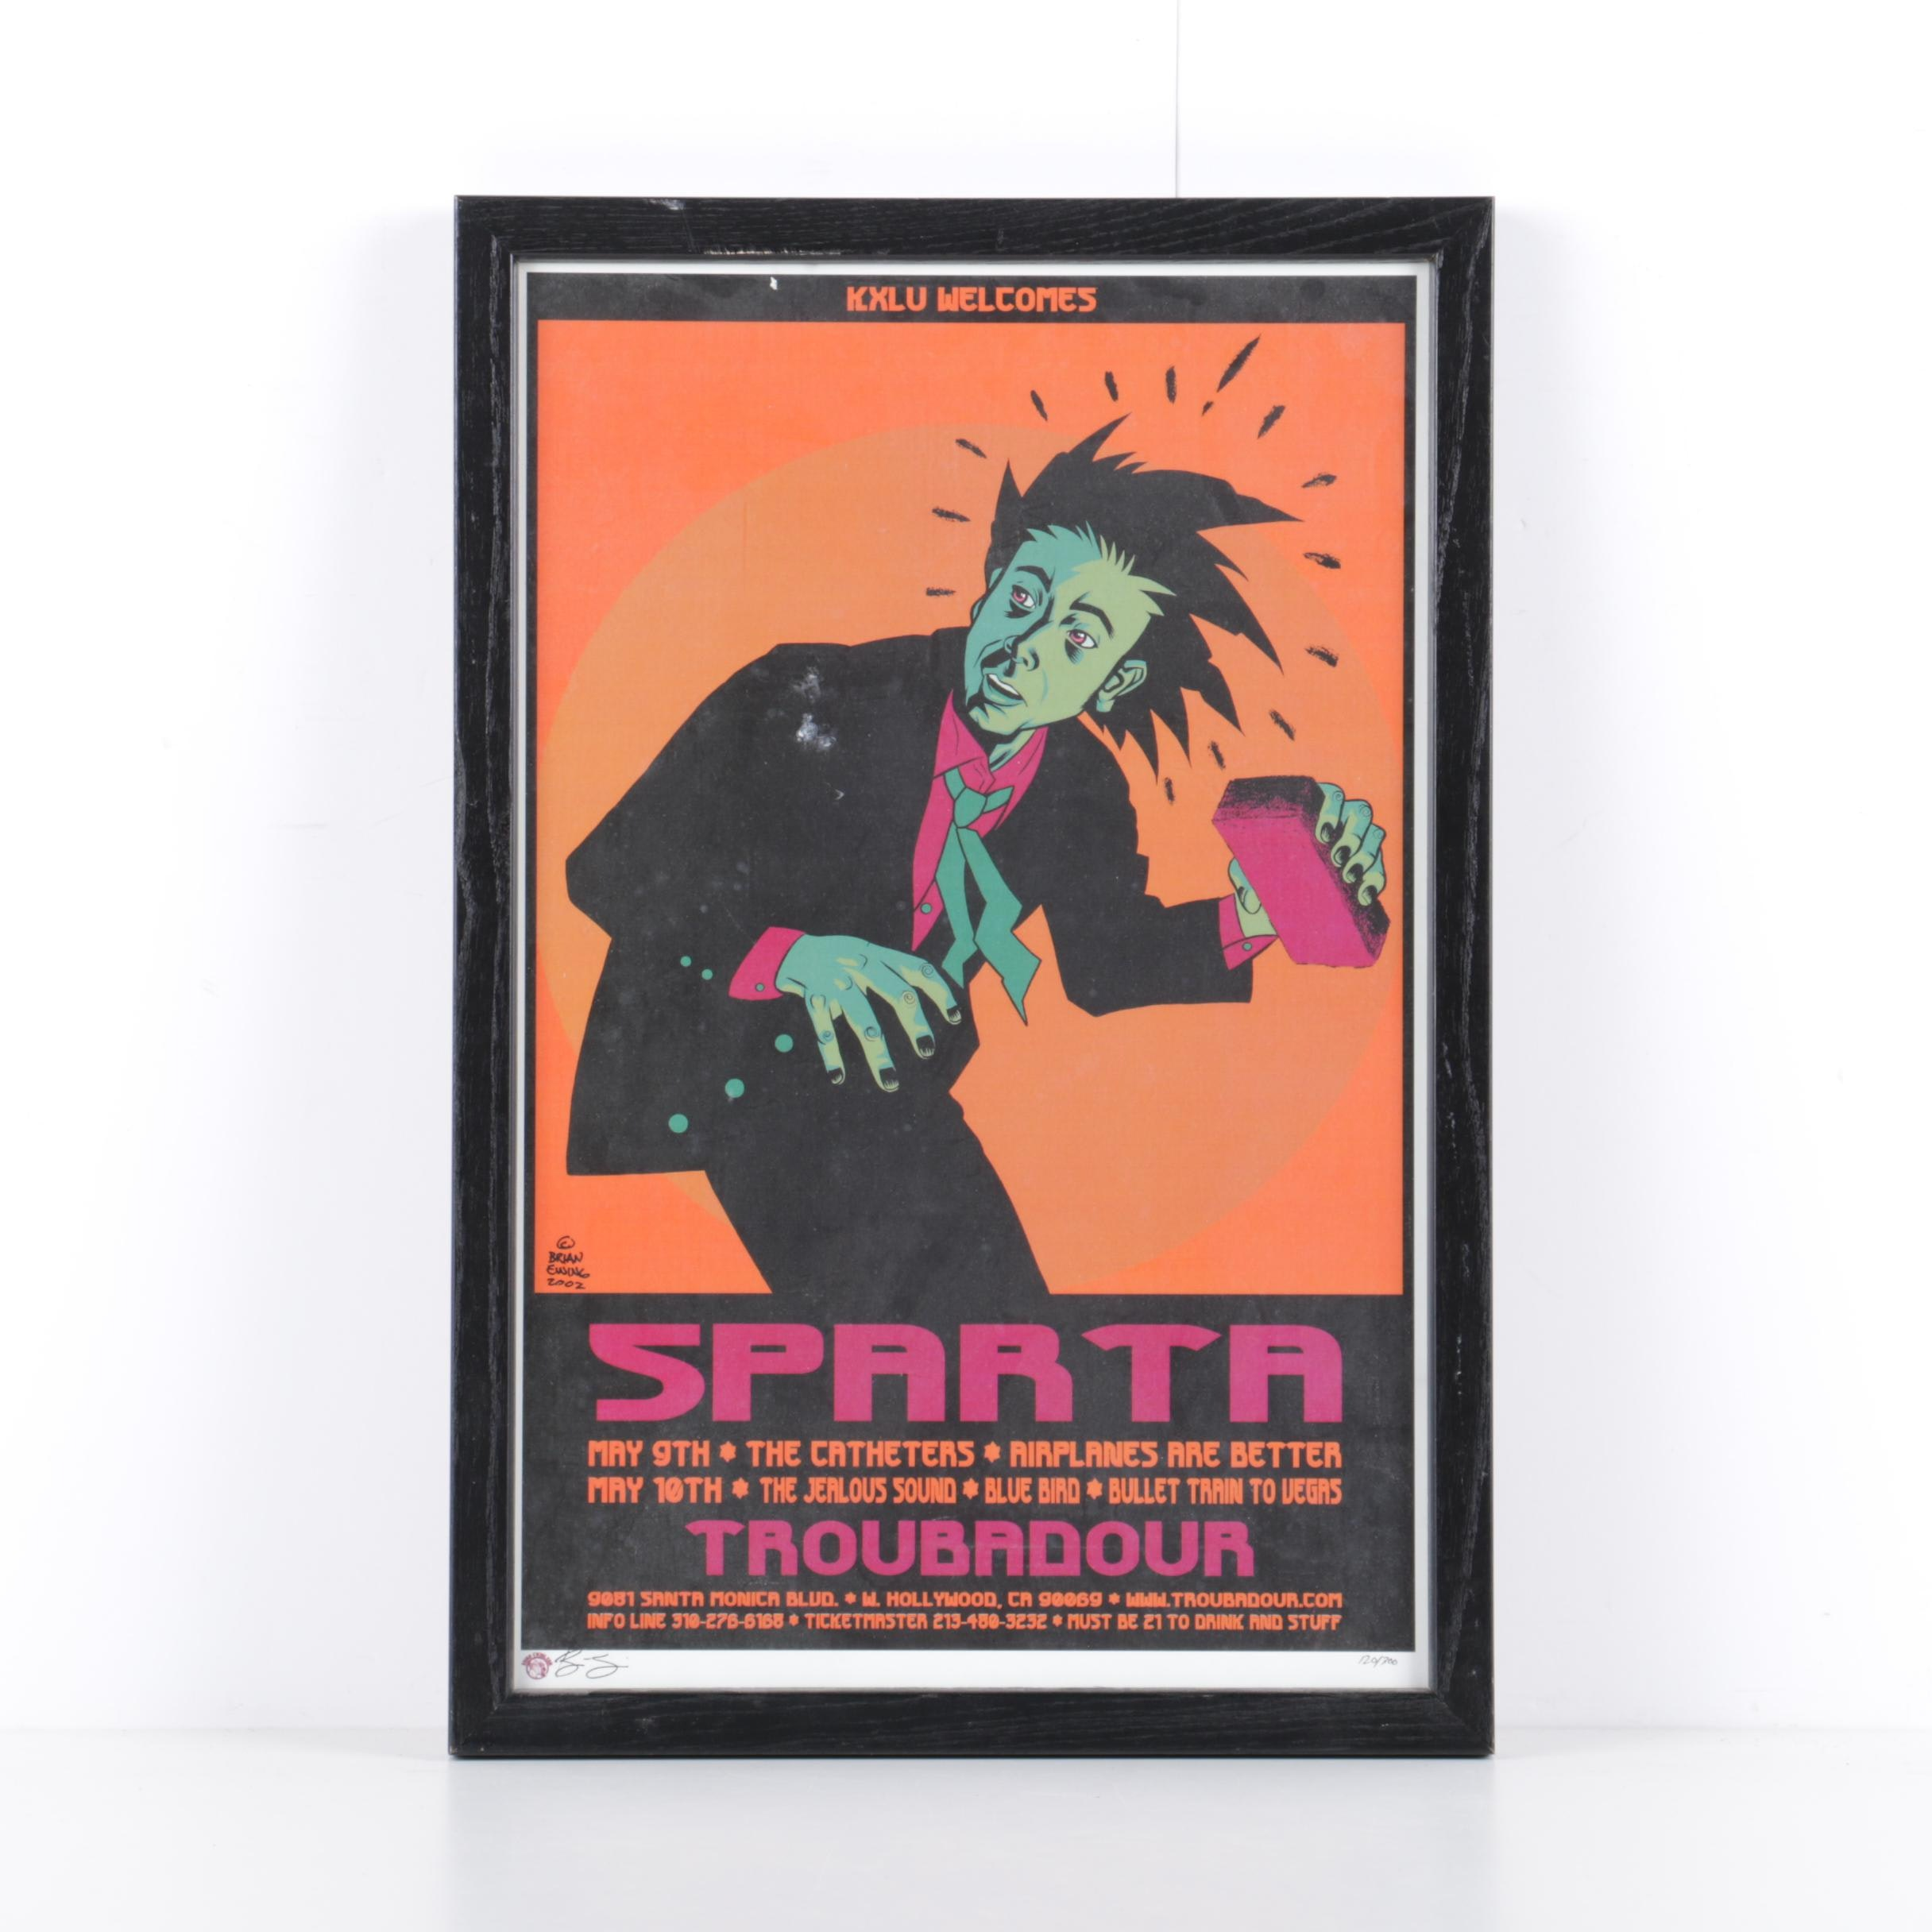 Brian Ewing 2002 Limited Edition Concert Poster for Sparta at the Troubadour